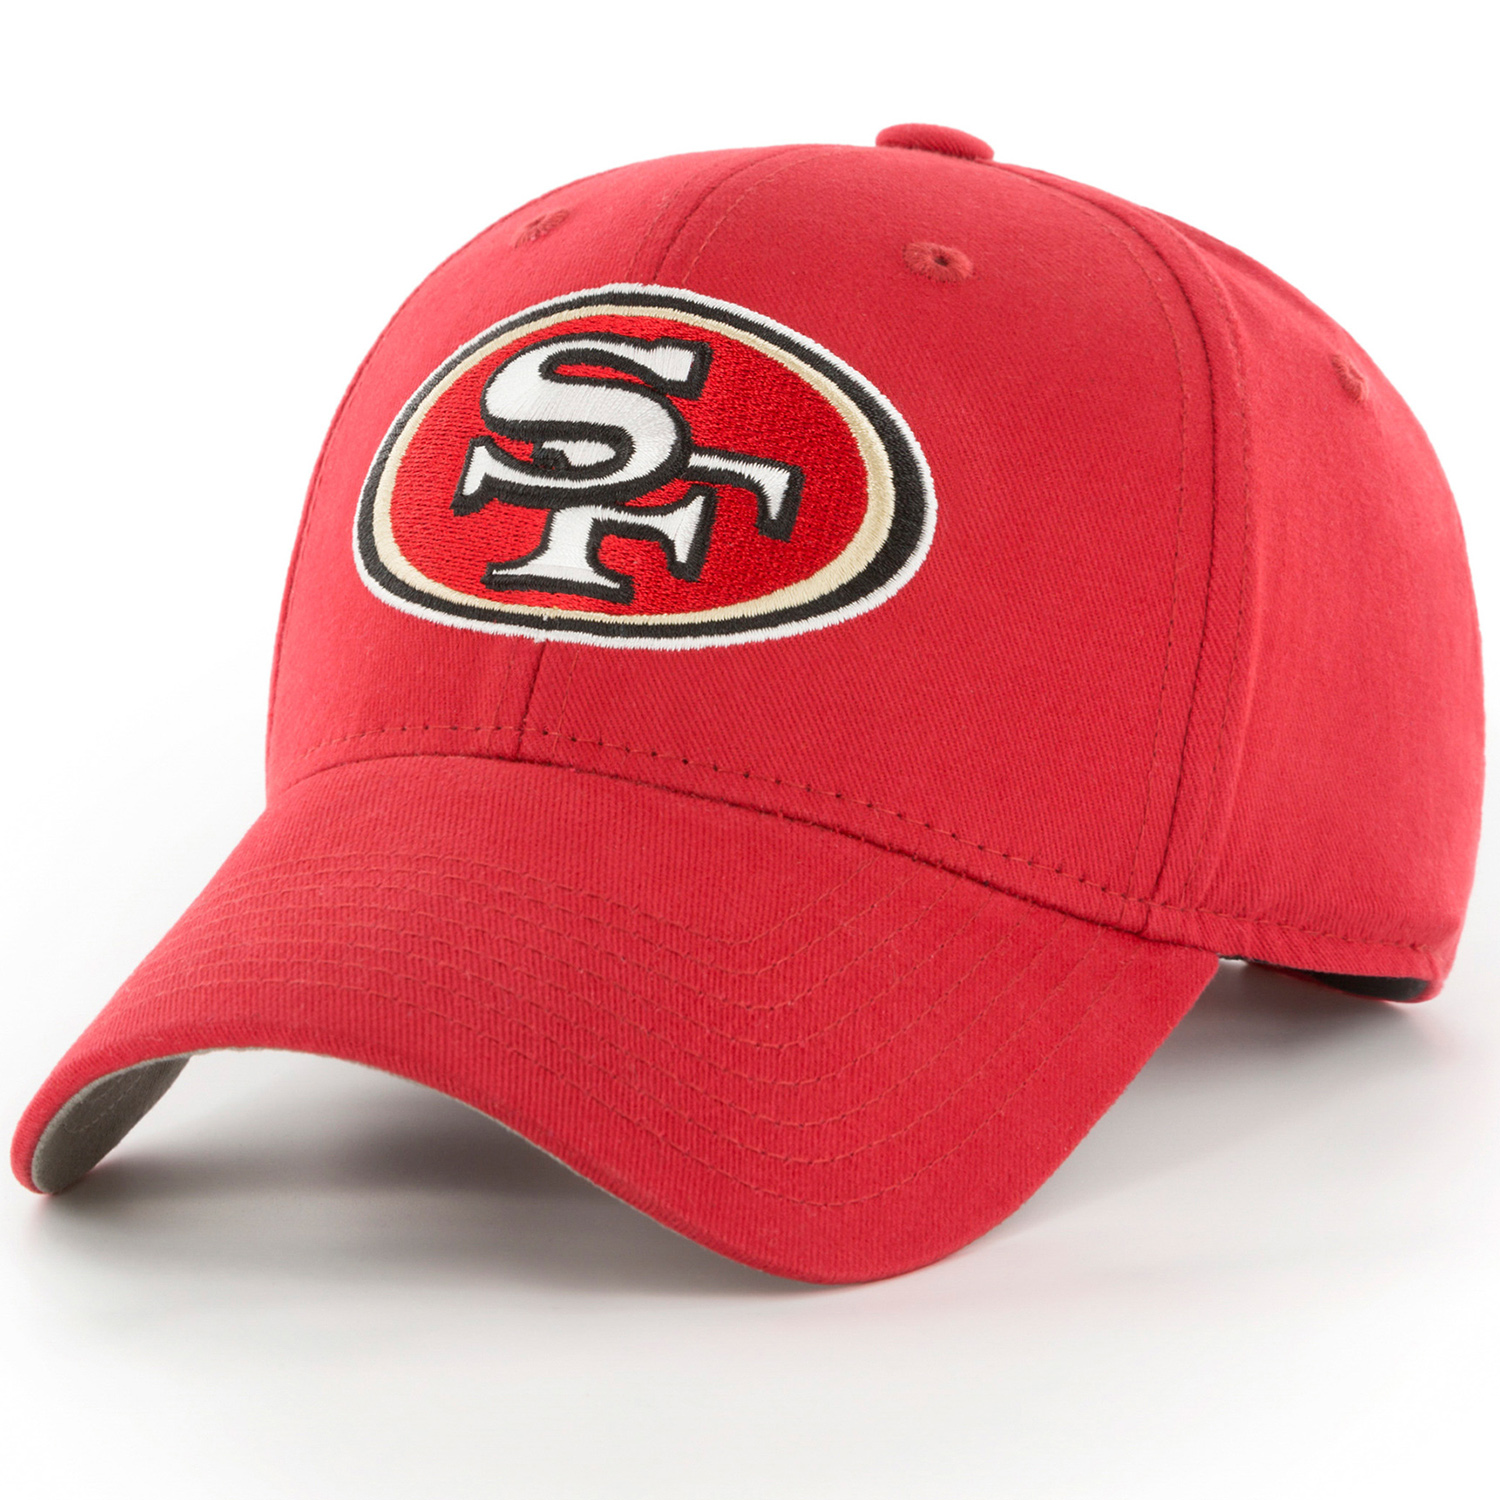 Men's Fan Favorite Scarlet San Francisco 49ers Mass Basic Adjustable Hat - OSFA